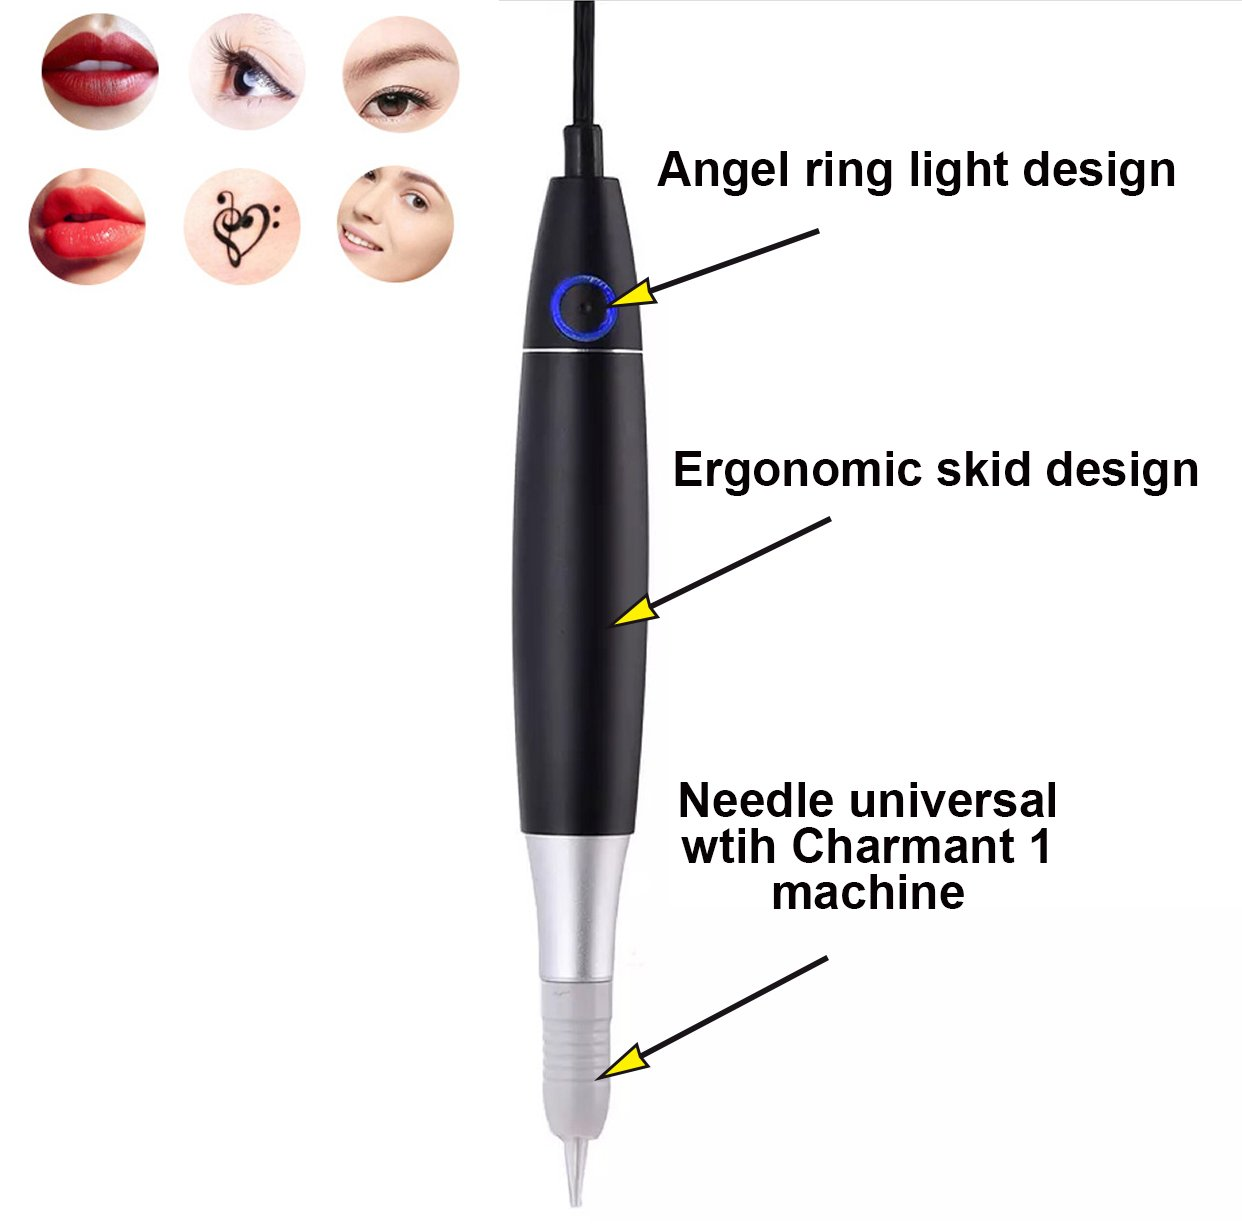 Schönheit & Gesundheit Streng Neueste Permanent Make-up Tattoo Maschine Kits Professionelle Digitale Tattoo Maschine Augenbraue Lip Stift Maschine Sets Mit Nadeln